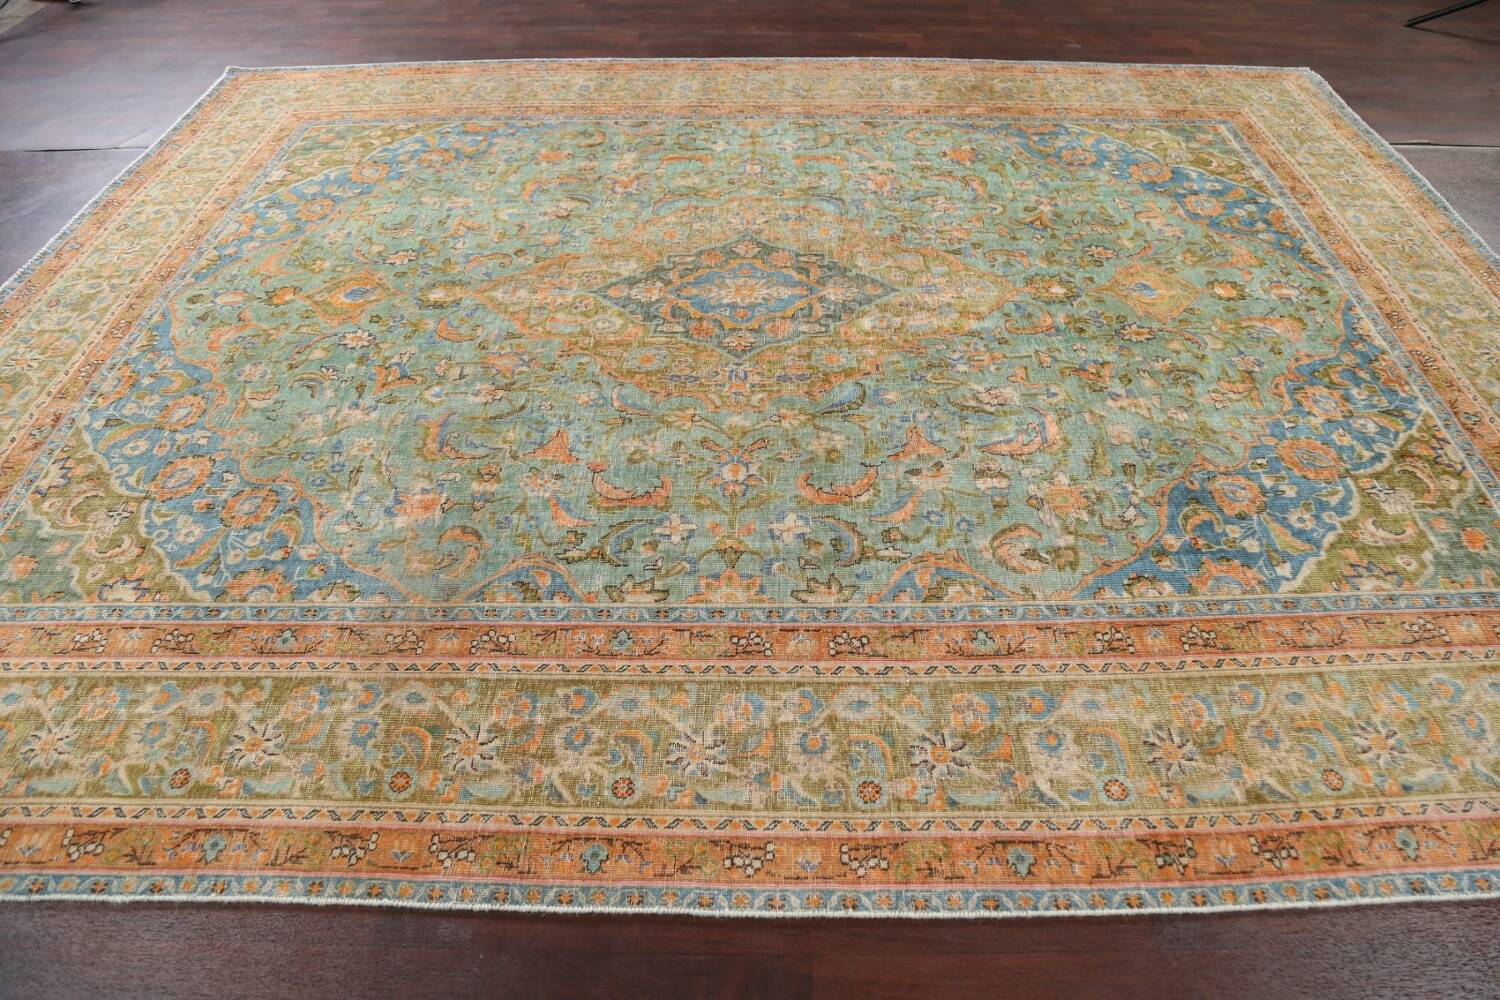 Antique Distressed Over-Dye Kashan Persian Area Rug 9x12 image 15